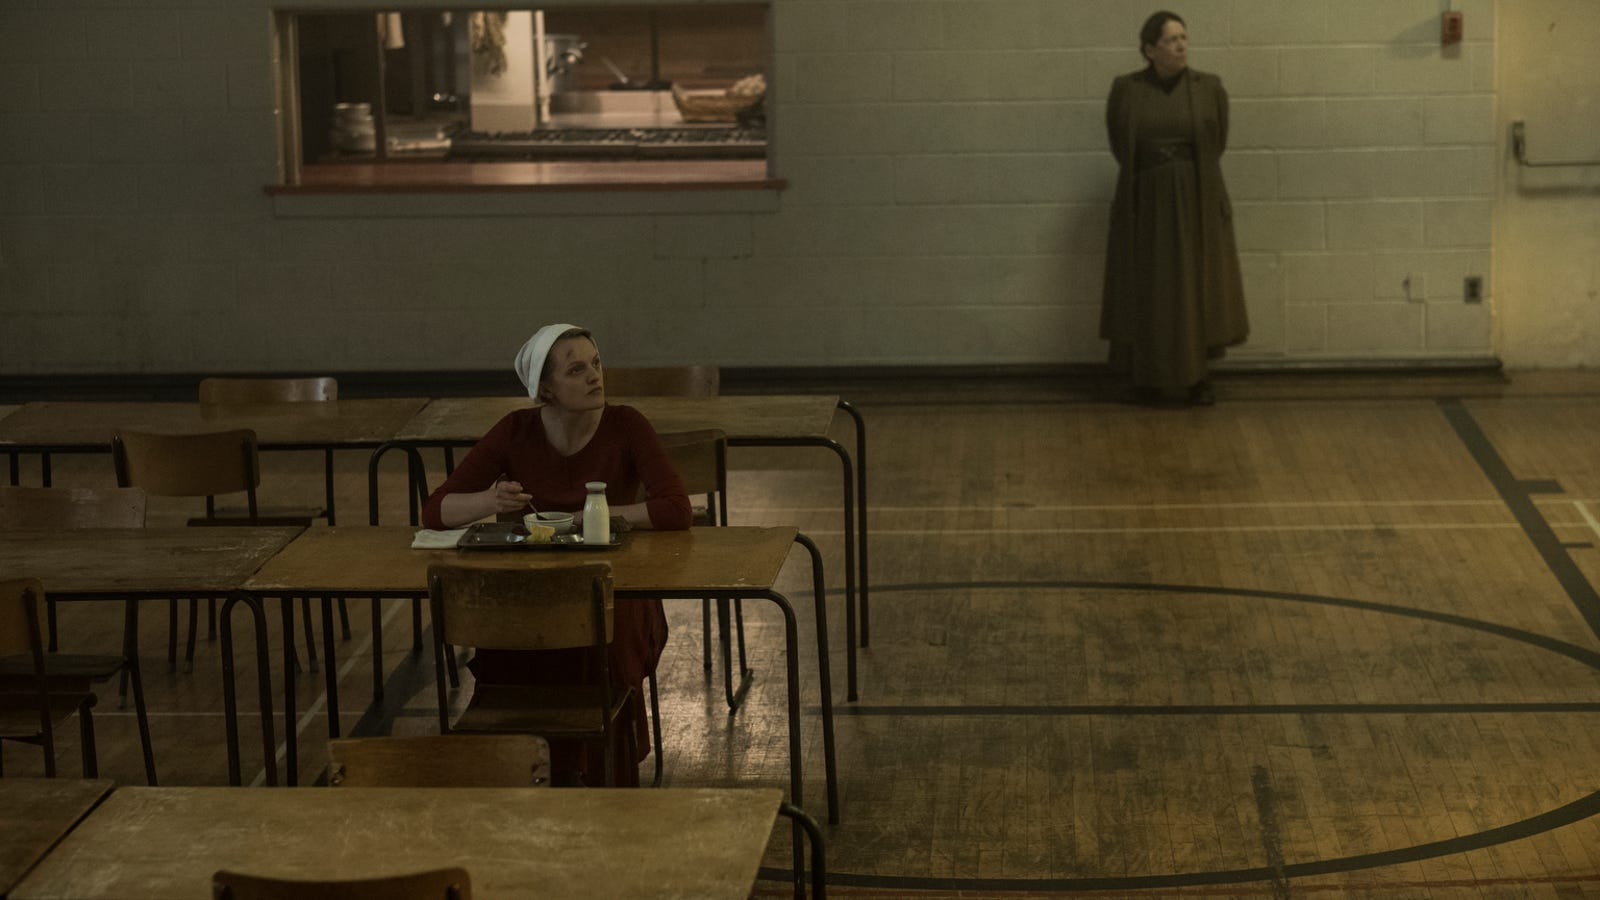 This season, The Handmaid's Tale is making the connection between Gilead and present-day America explicit